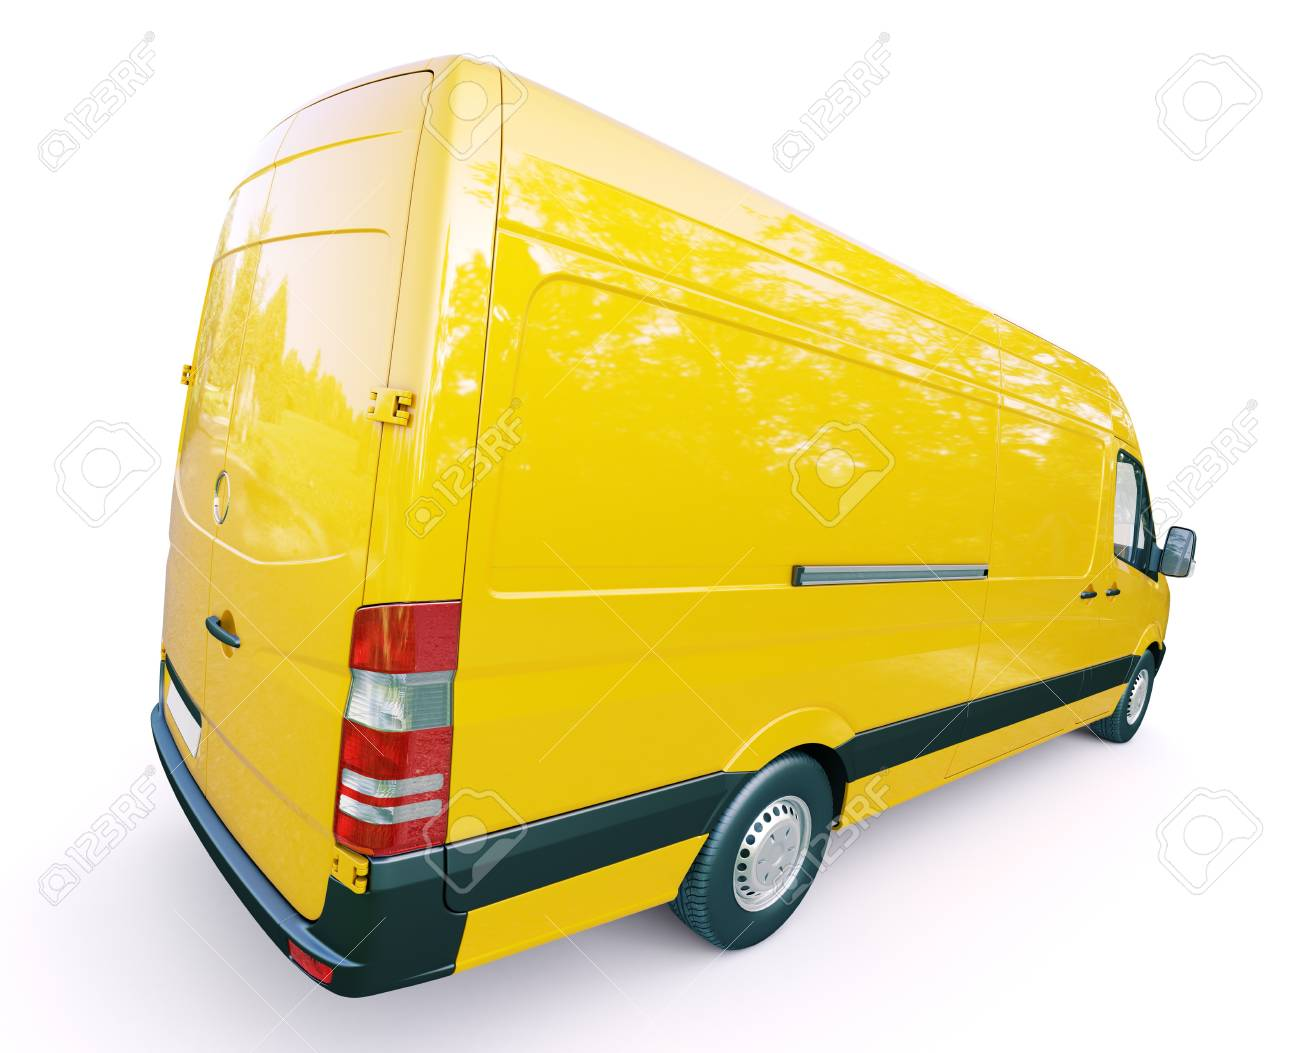 Modern commercial van on a light background Stock Photo - 21753051